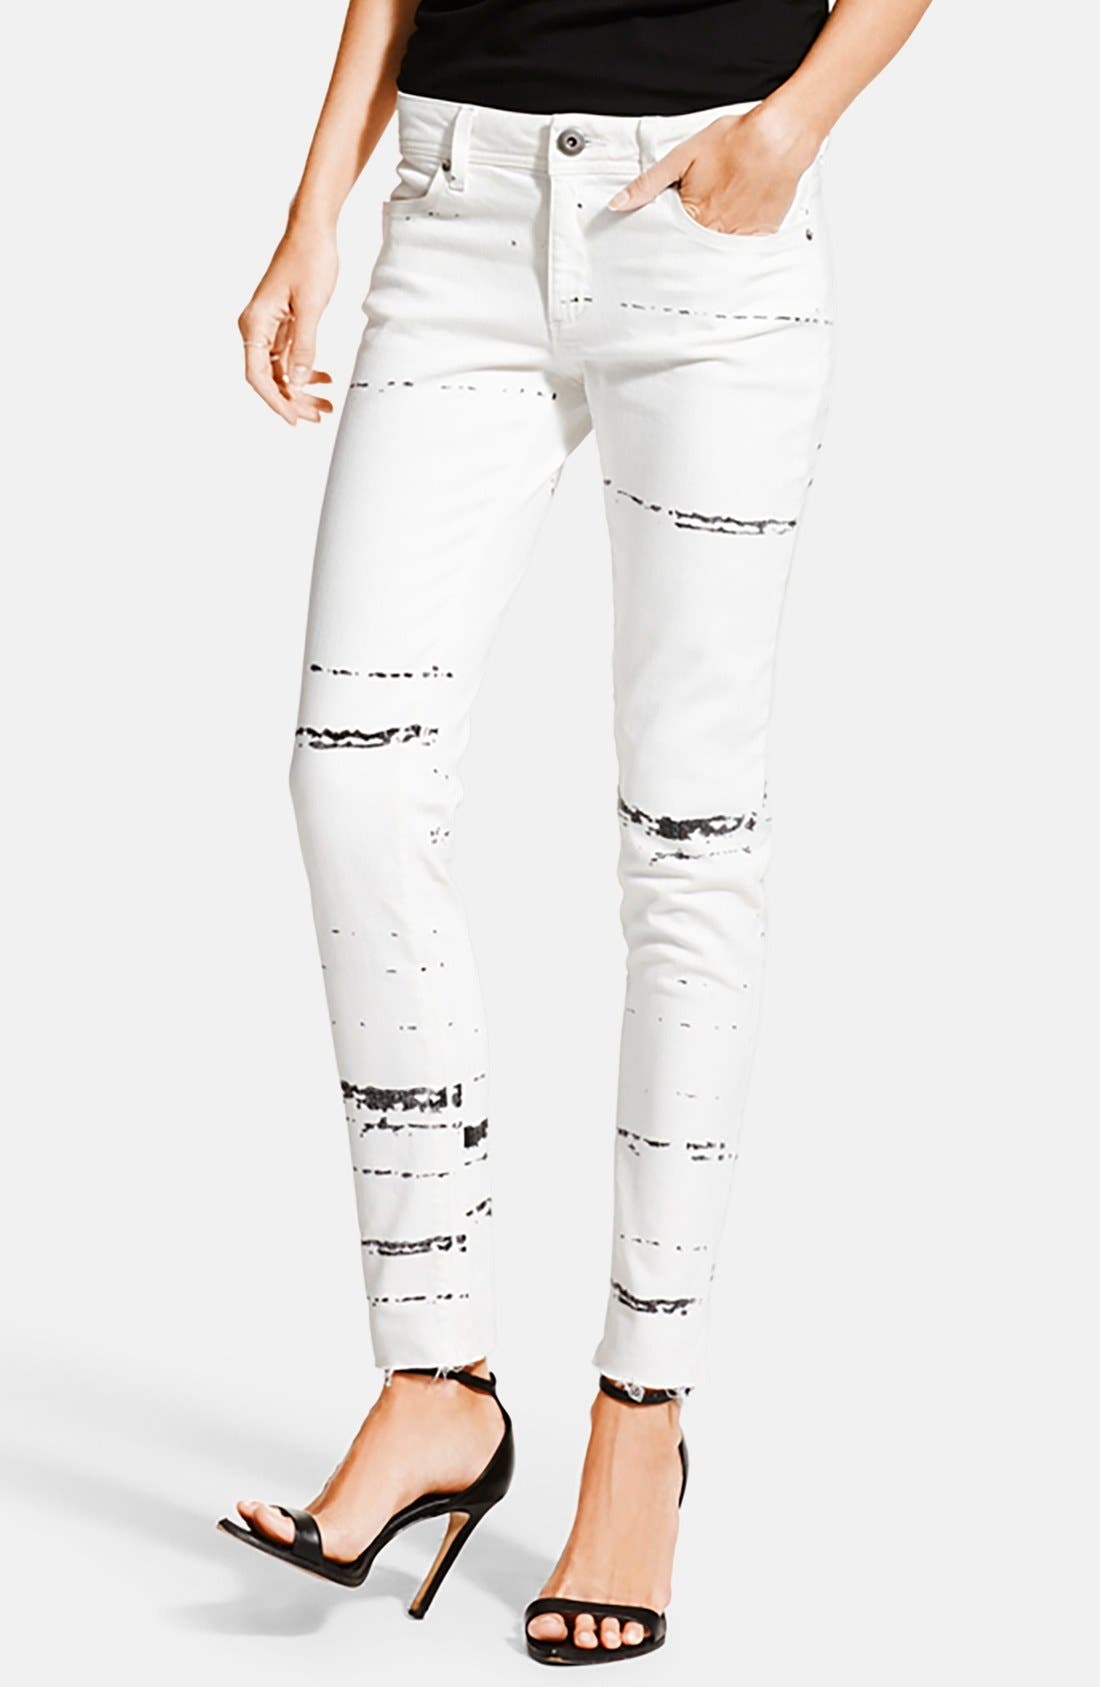 Alternate Image 1 Selected - DL1961 'Emma' Power Legging Jeans (Splatter)